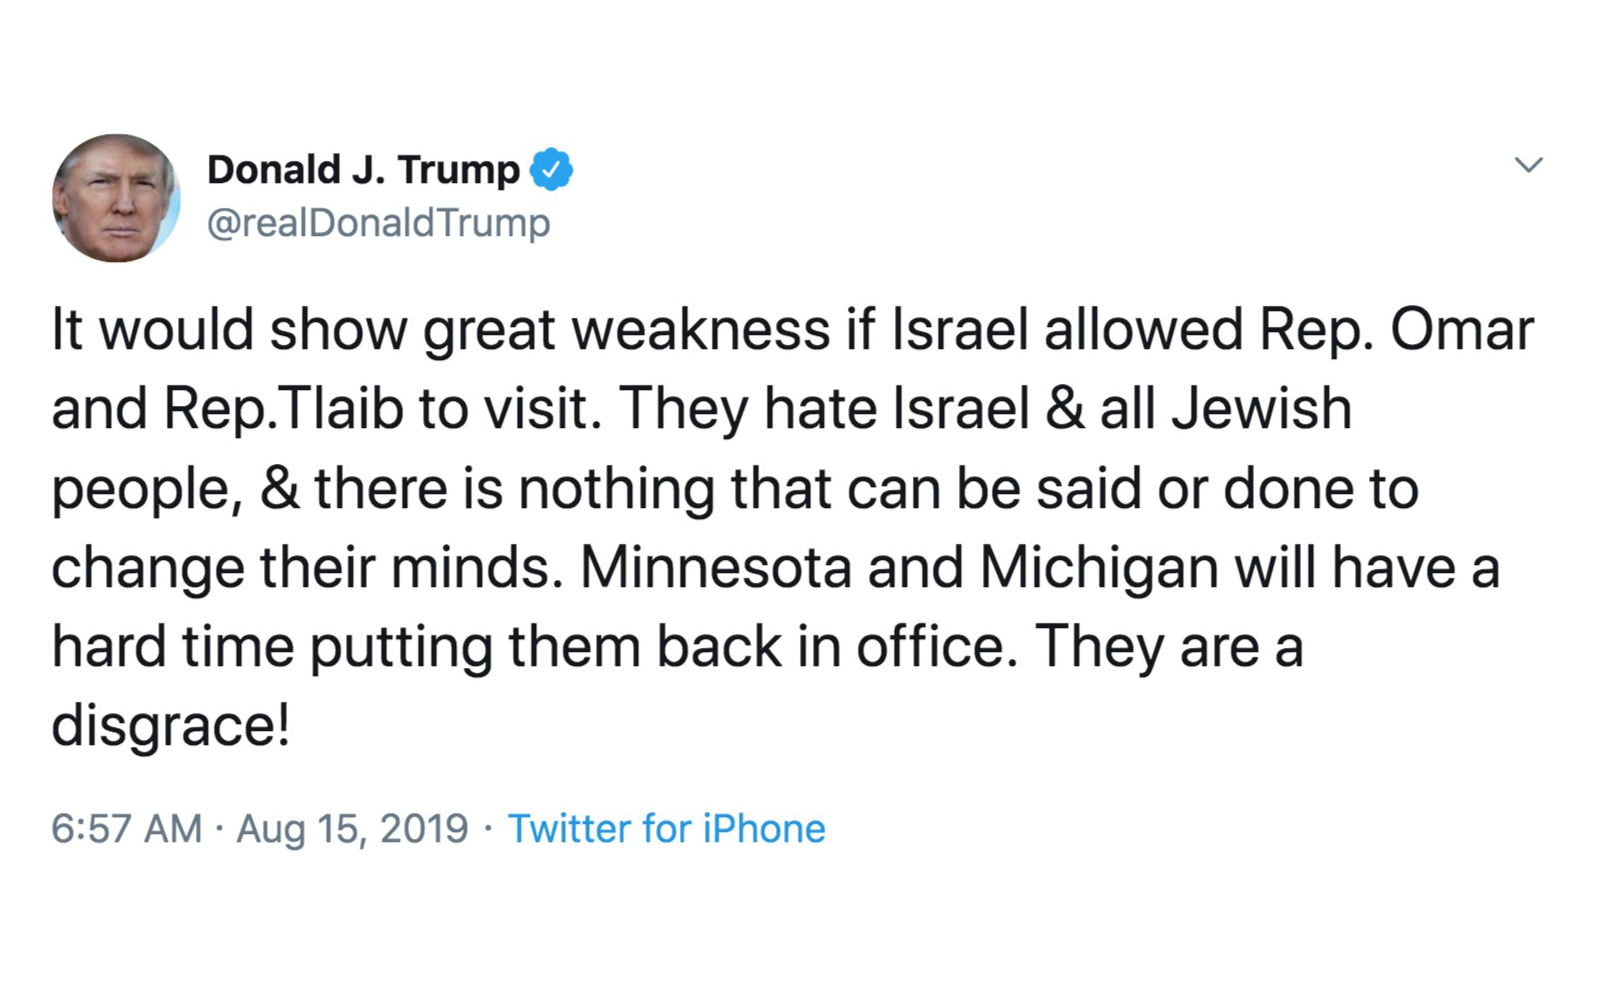 """A tweet from Donald Trump's Twitter, reading, """"It would show great weakness if Israel allowed Rep. Omar and Rep.Tlaib to visit. They hate Israel & all Jewish people, & there is nothing that can be said or done to change their minds."""""""